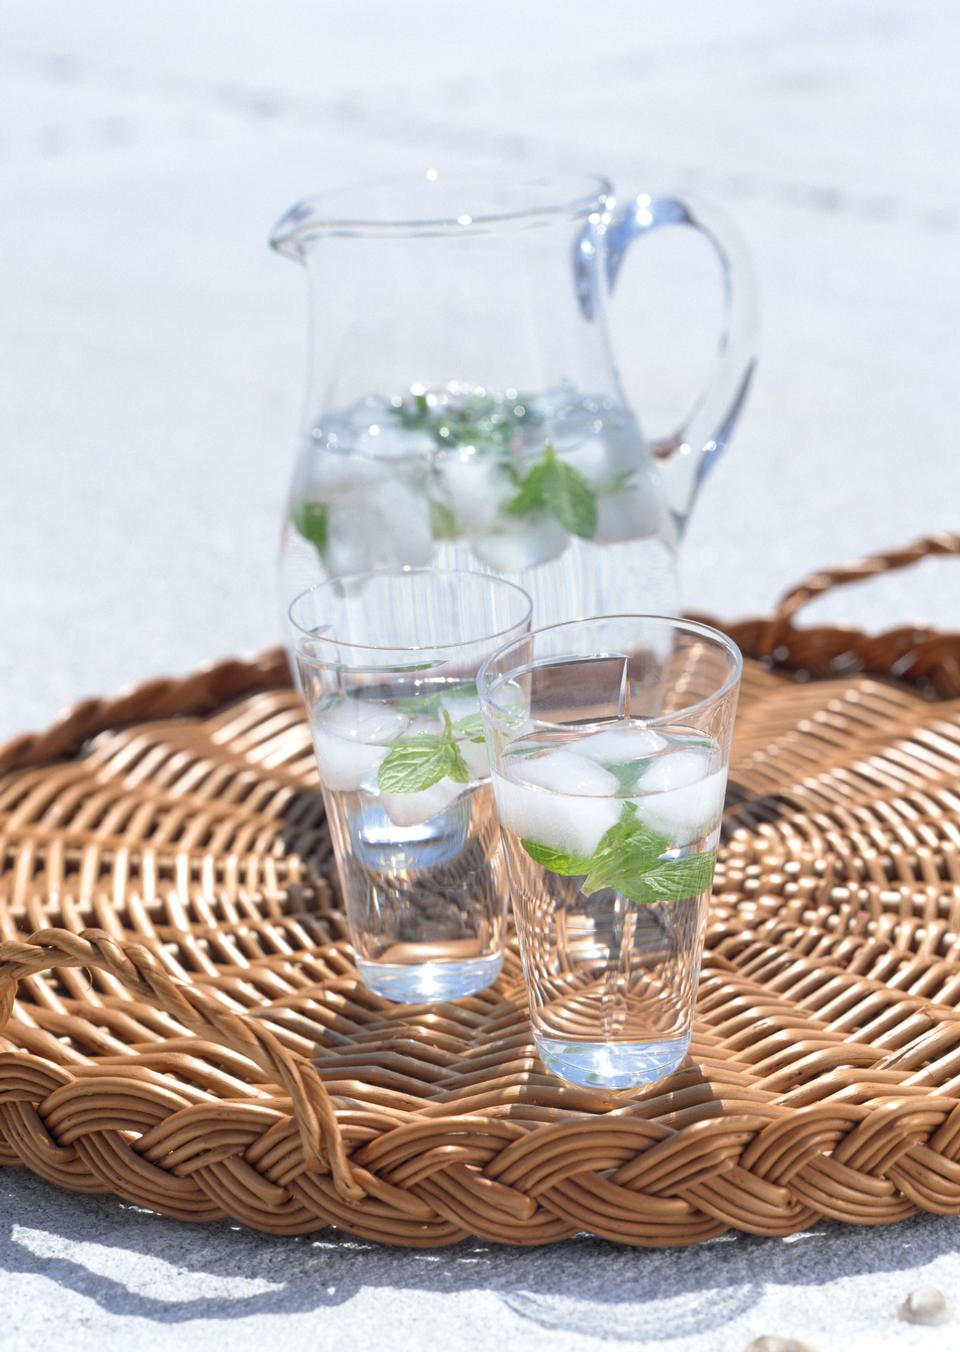 Glass of water and fresh herbs